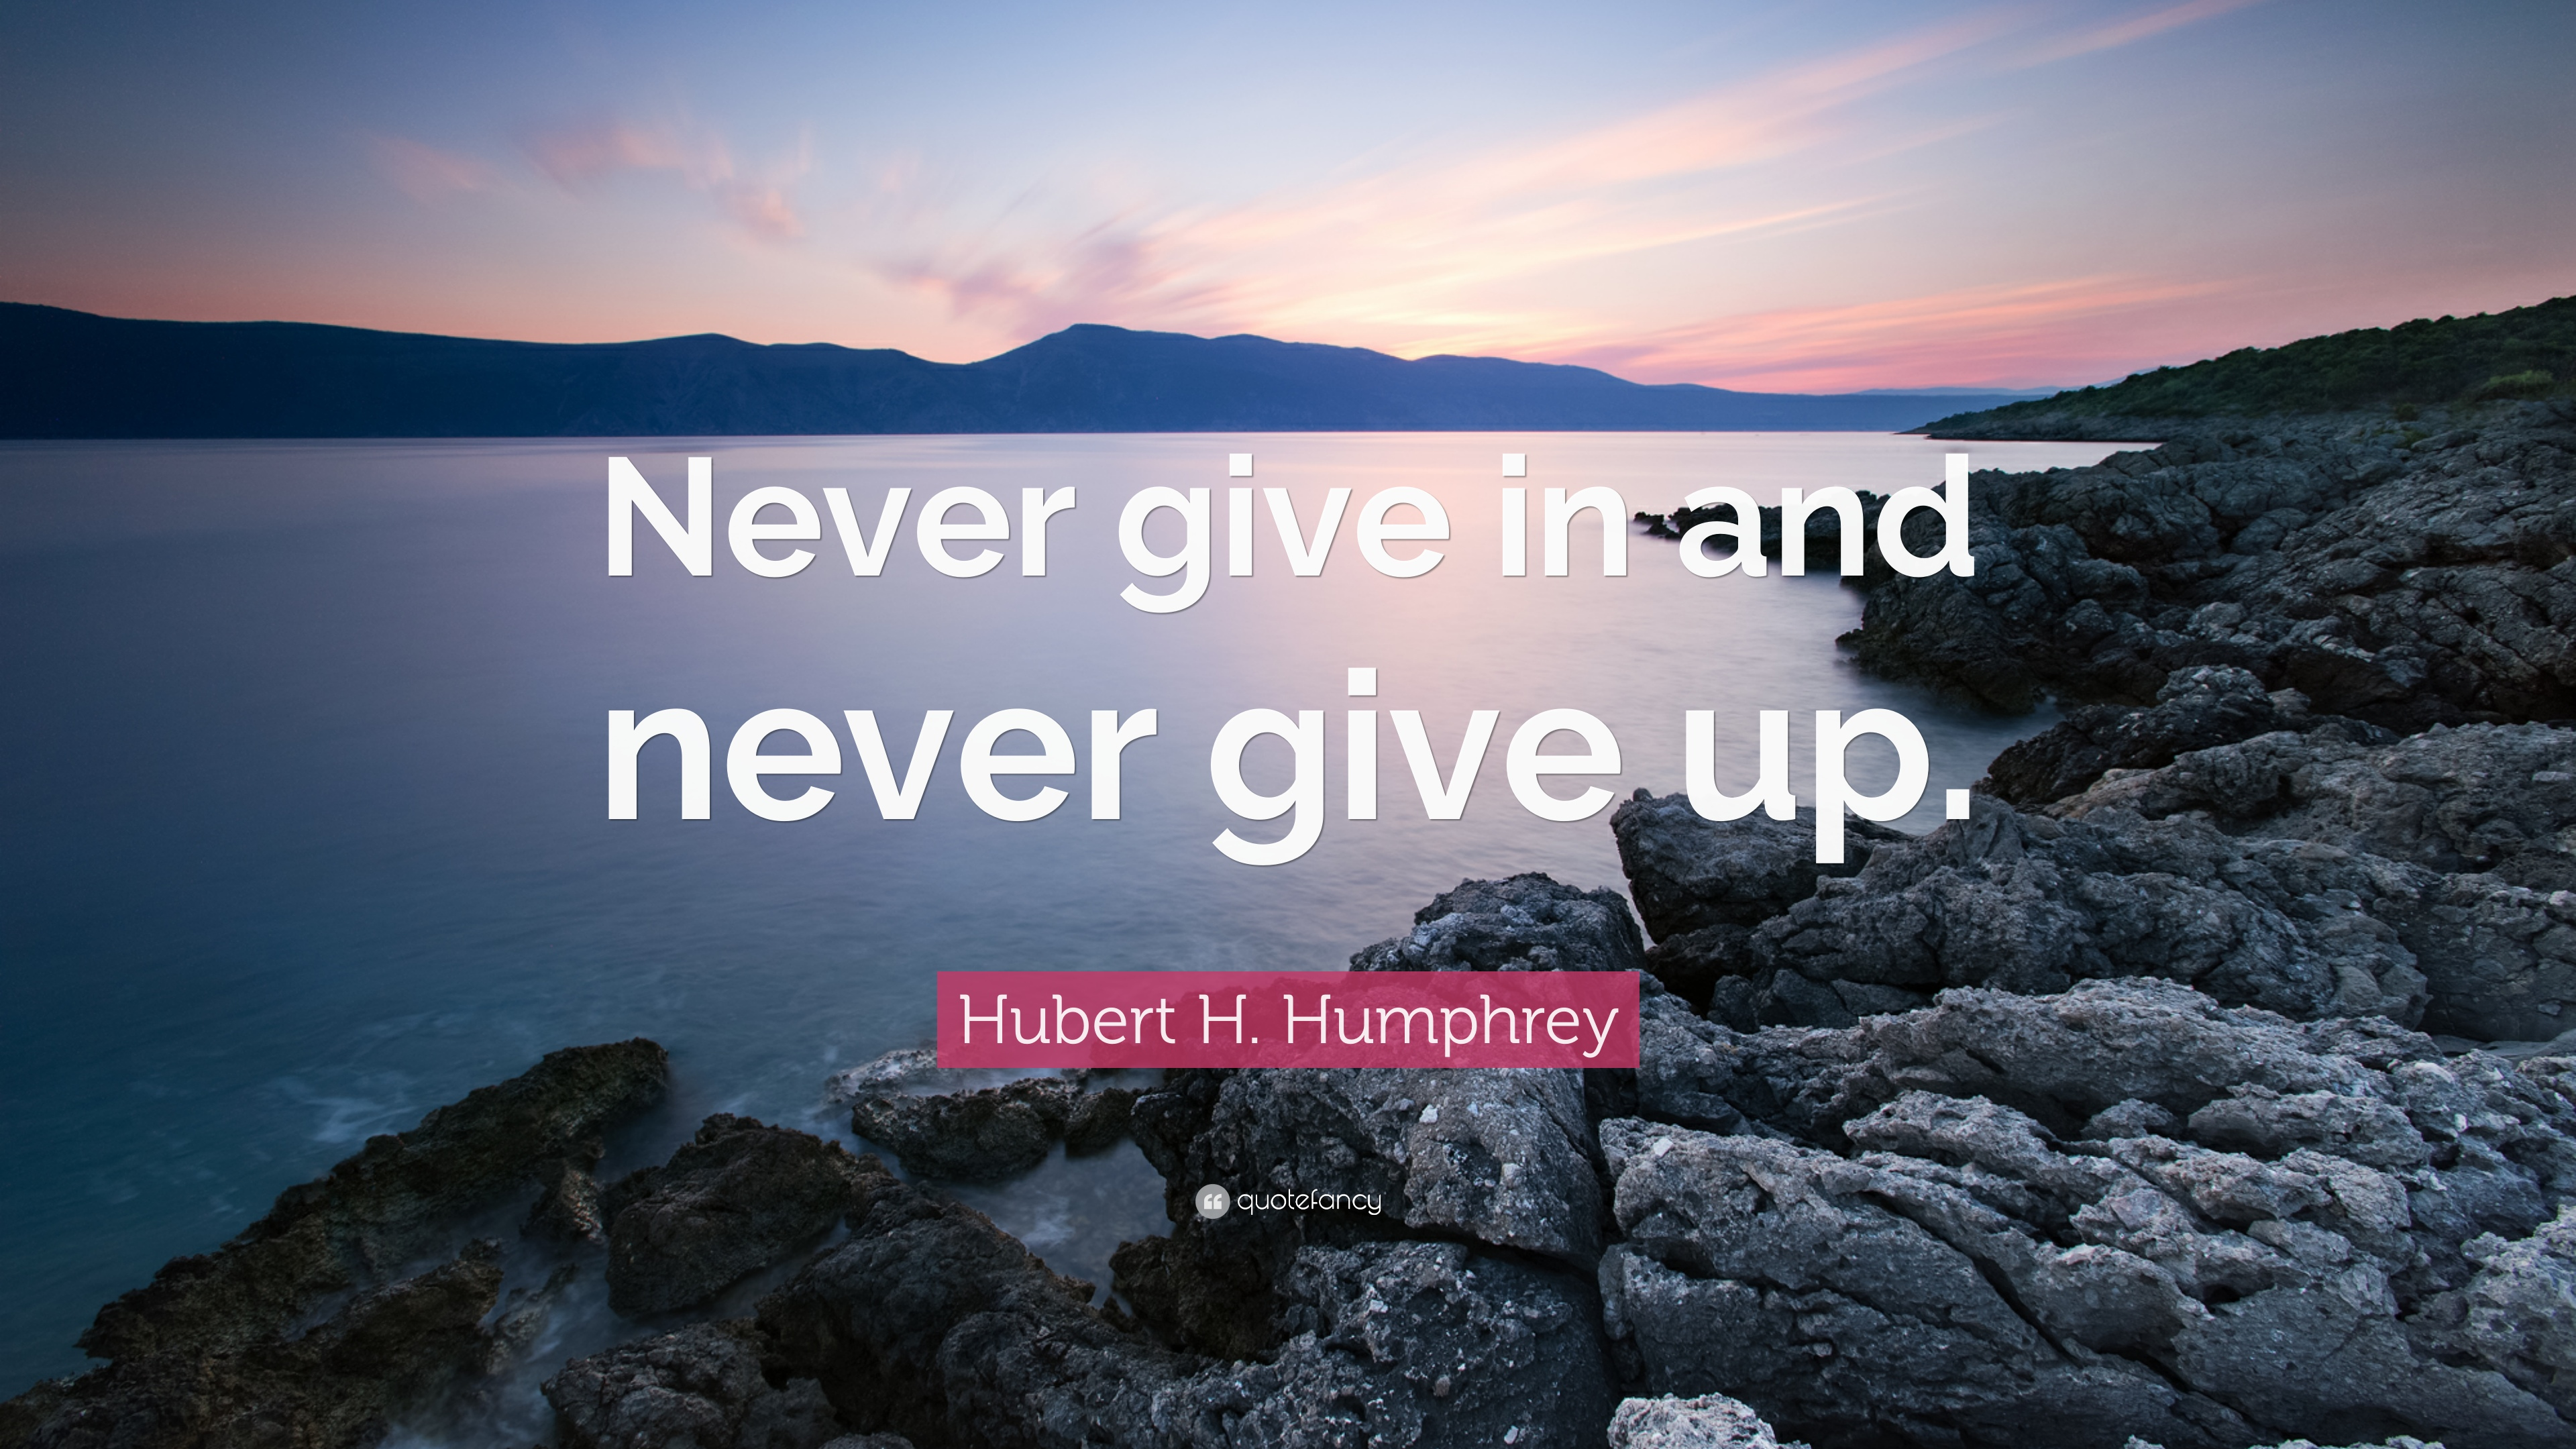 Quotes About Not Giving Up | Not Giving Up Quotes 32 Wallpapers Quotefancy